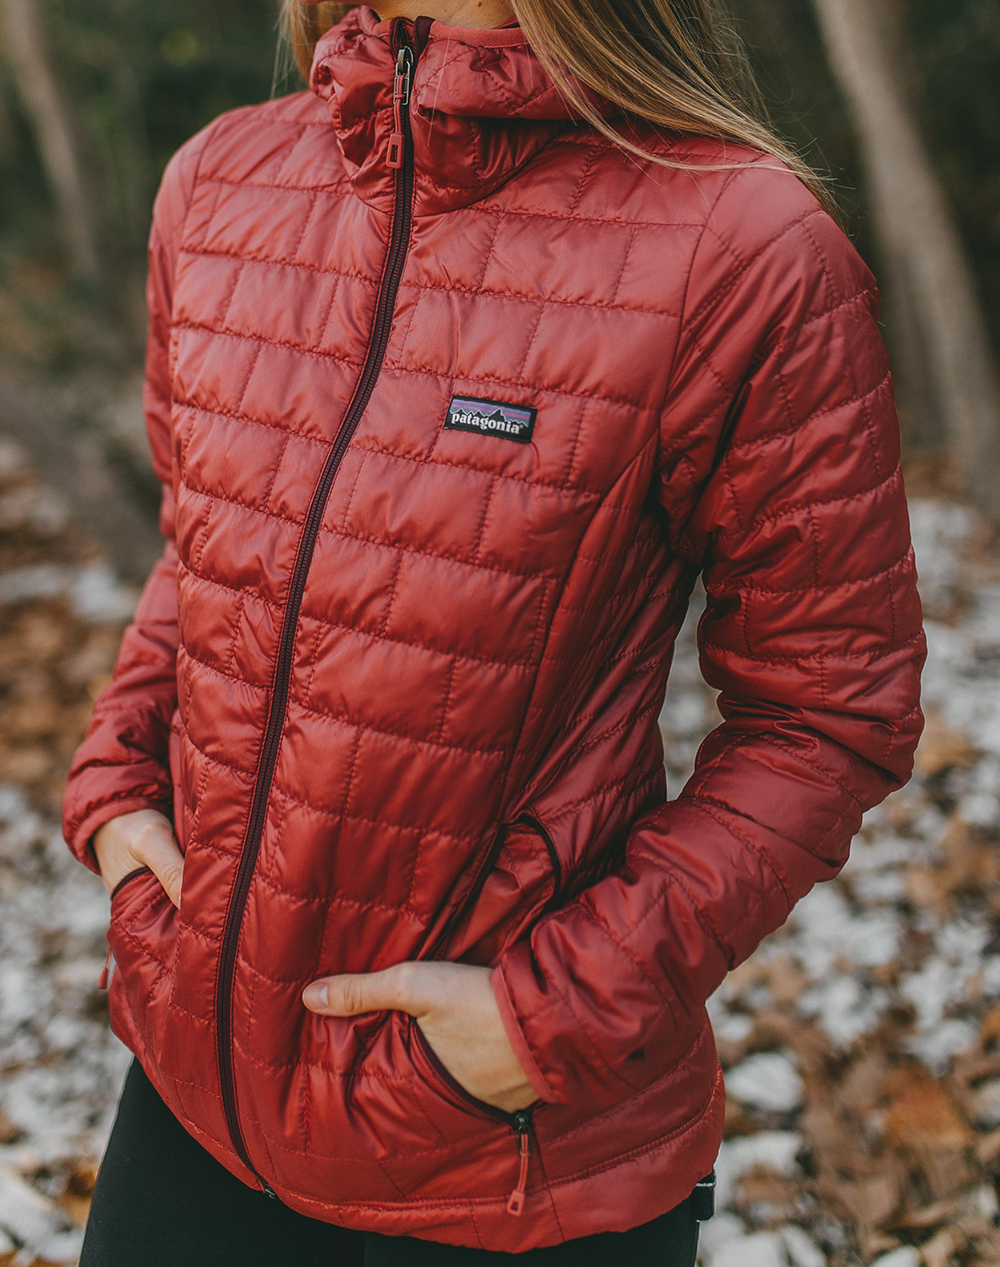 livvyland-blog-olivia-watson-austin-texas-hike-patagonia-nano-puff-hooded-insulated-jacket-1